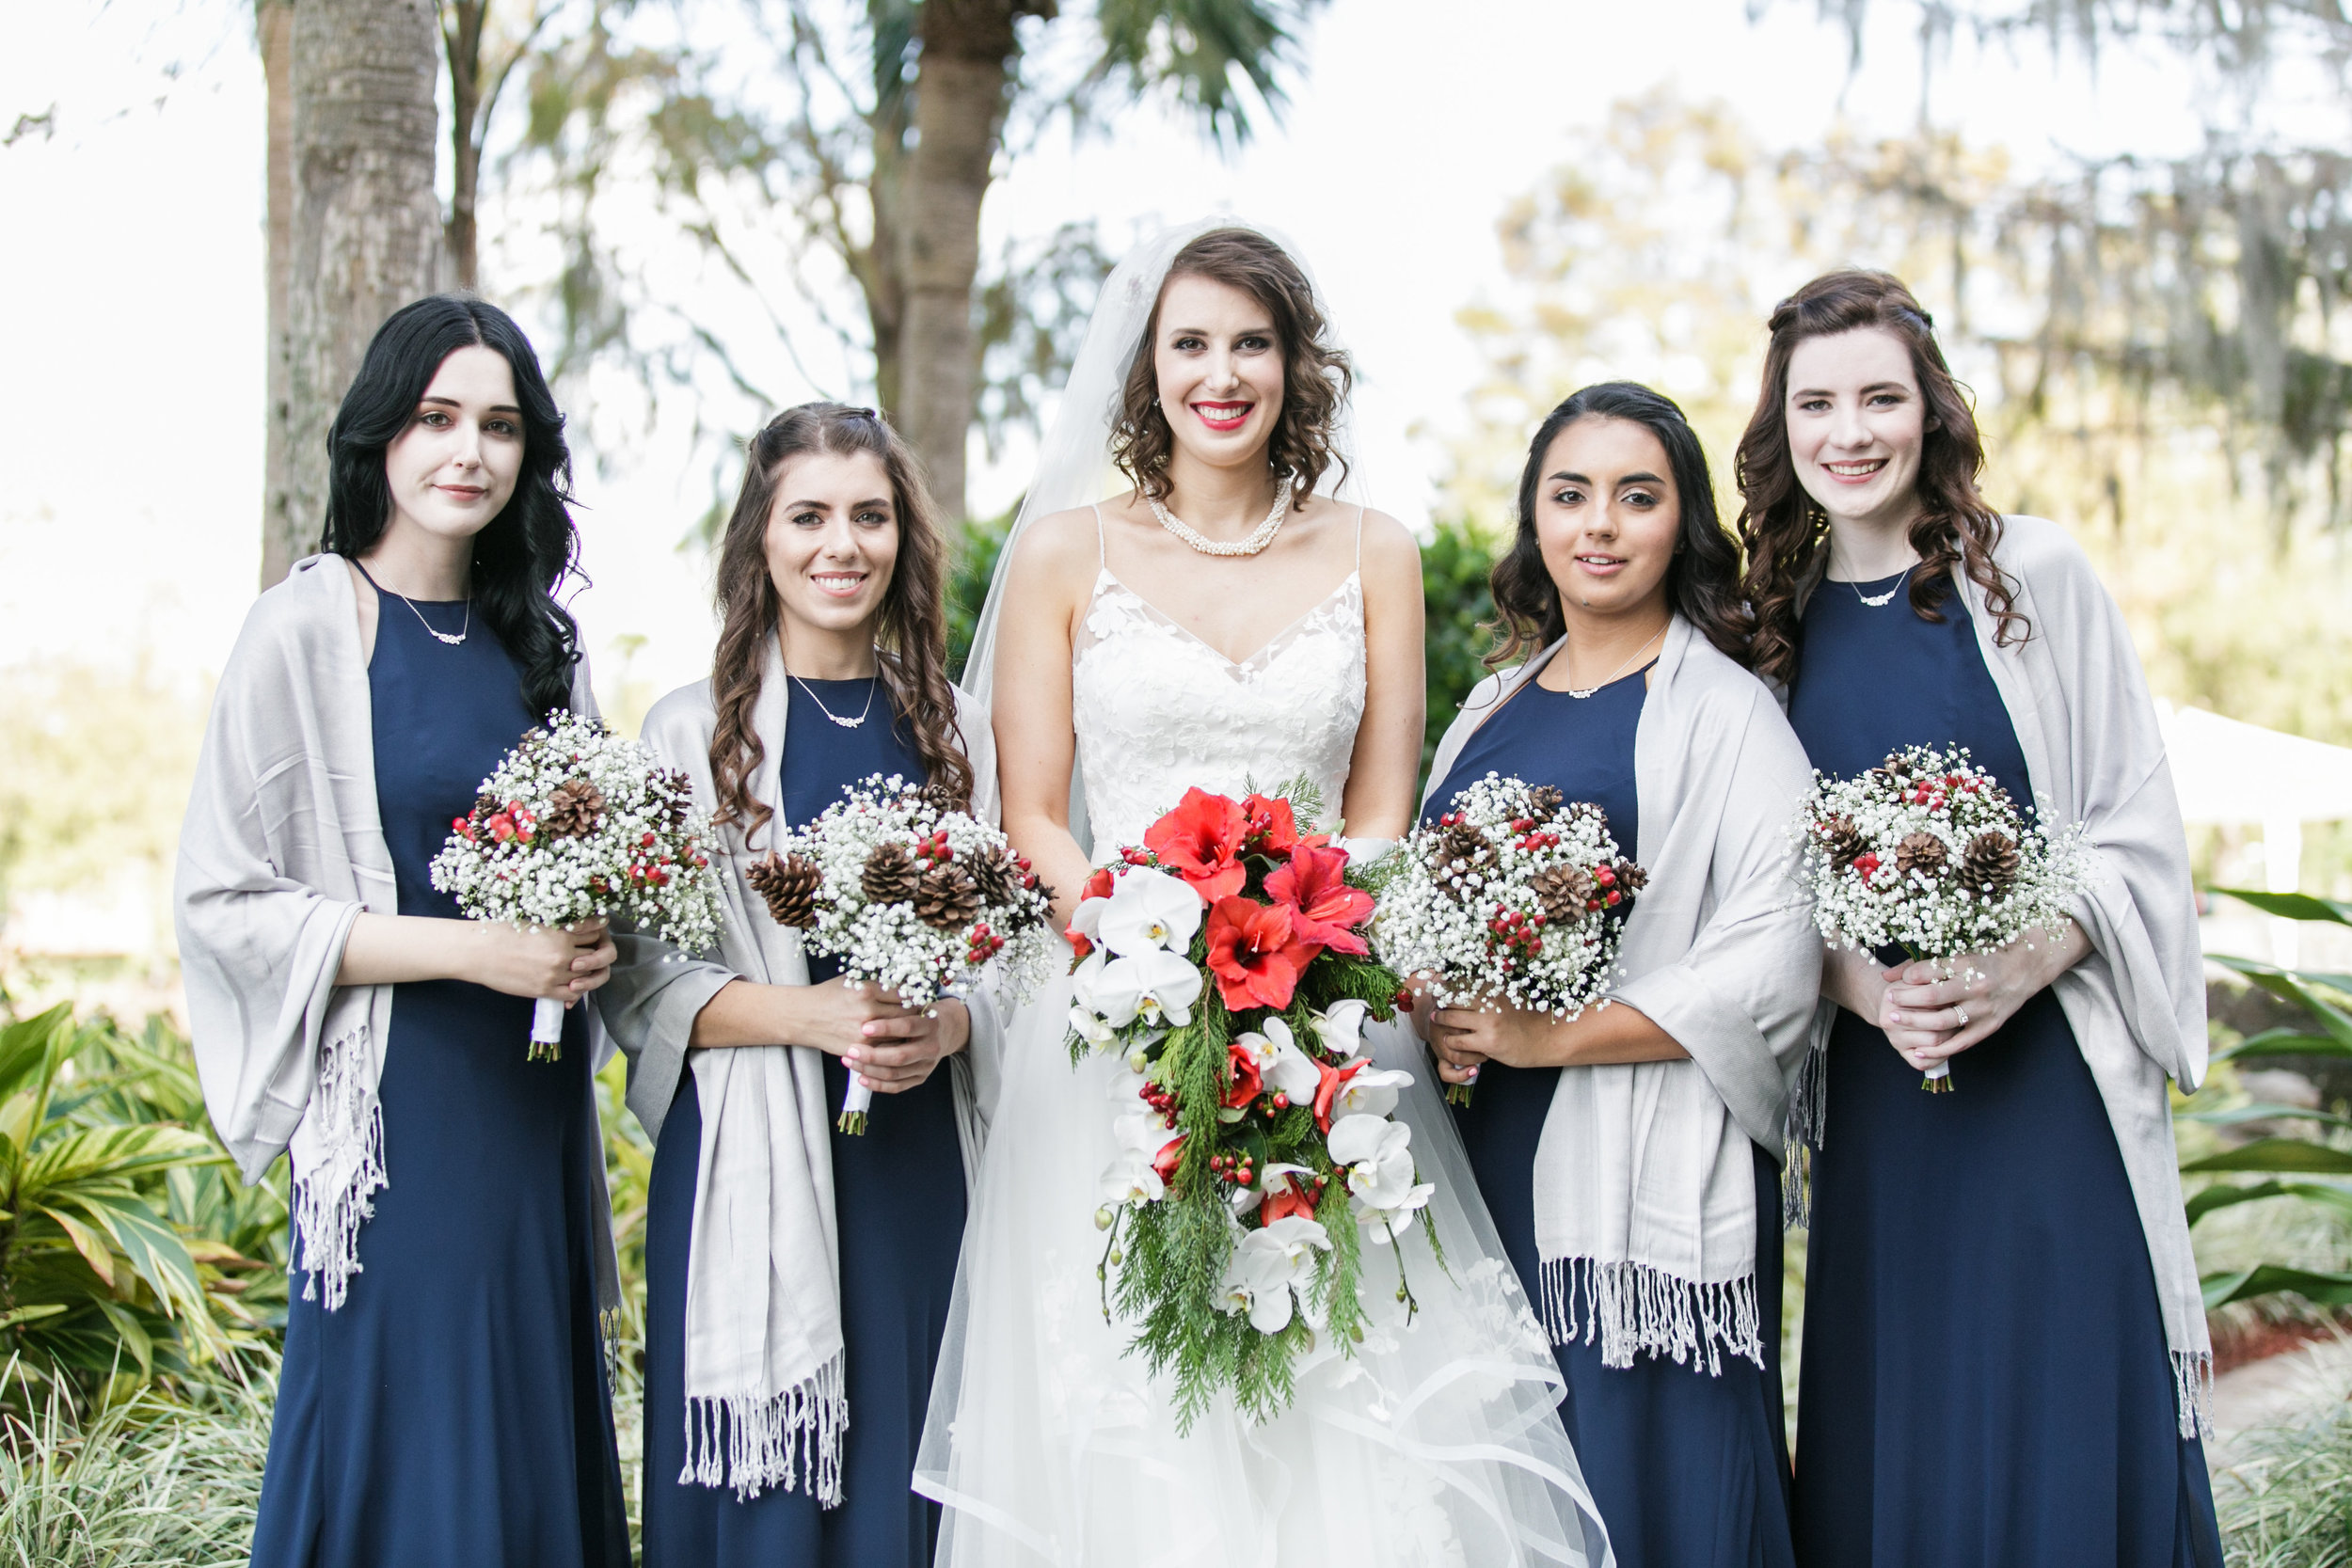 Bluegrass Chic - Orchid and Poinsettia bouquet